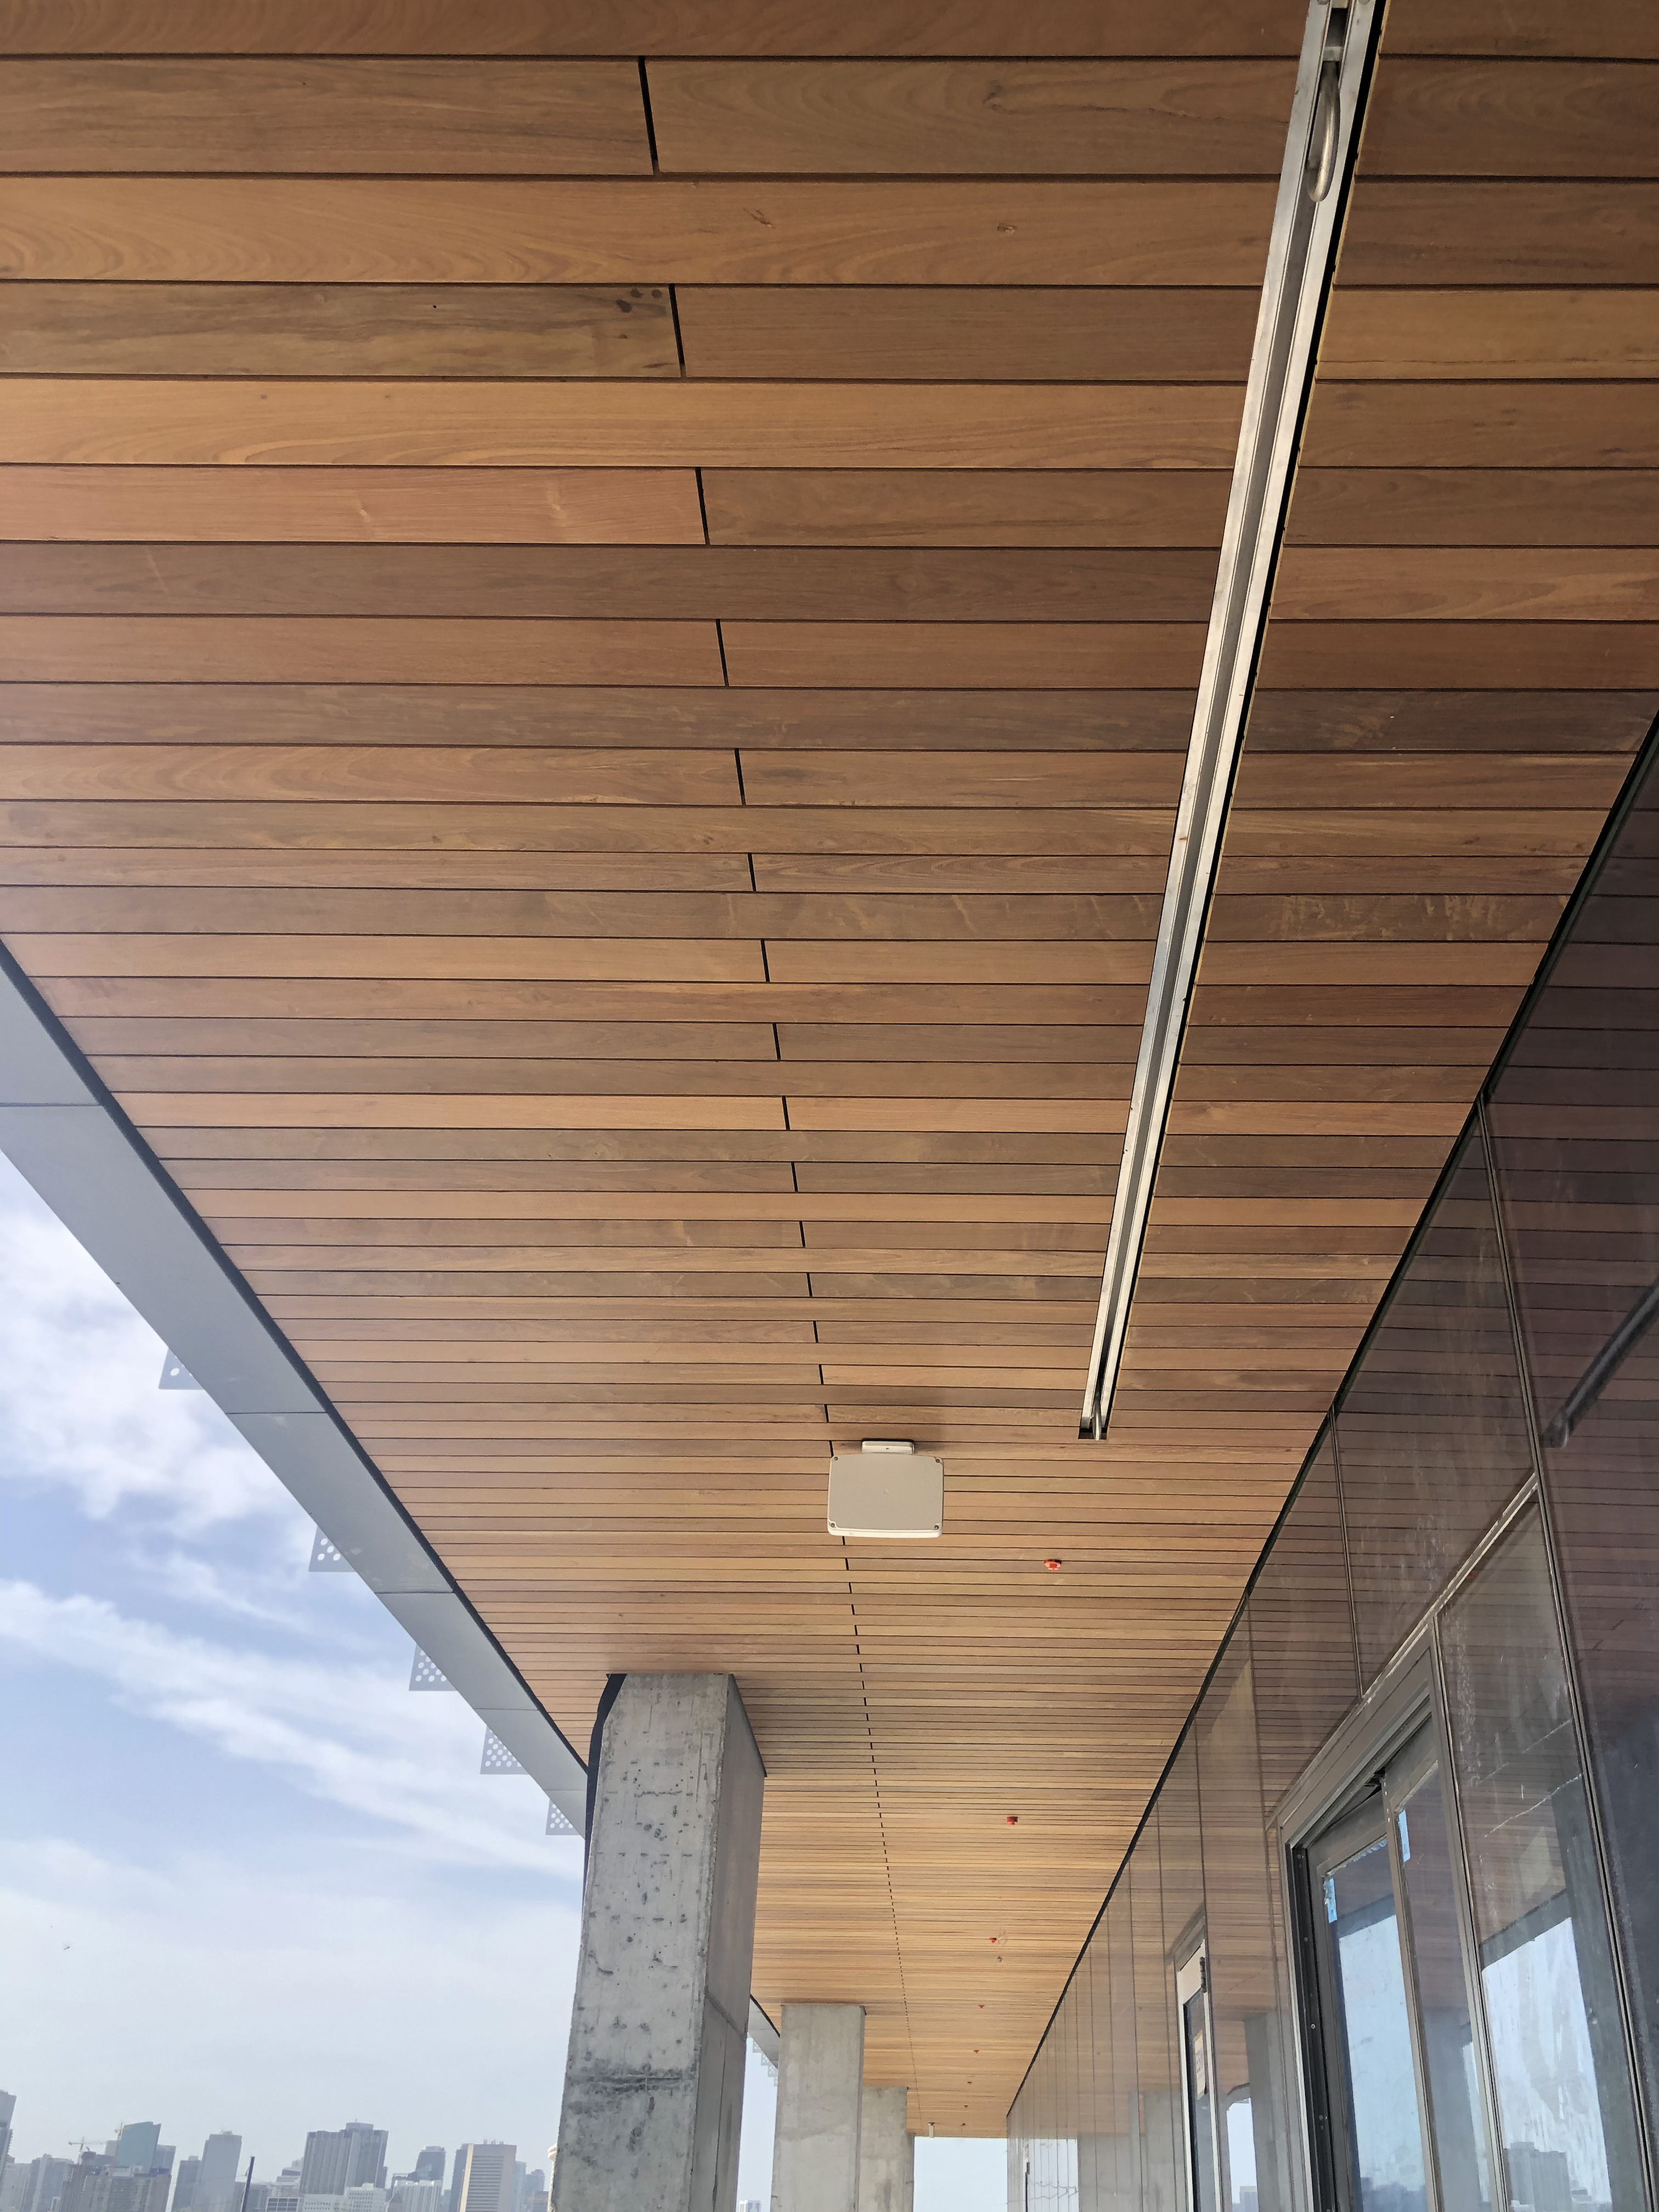 nova usa wood products Batu-Rainscreen-Siding-Ceiling-Miami-Florida-2.jpg